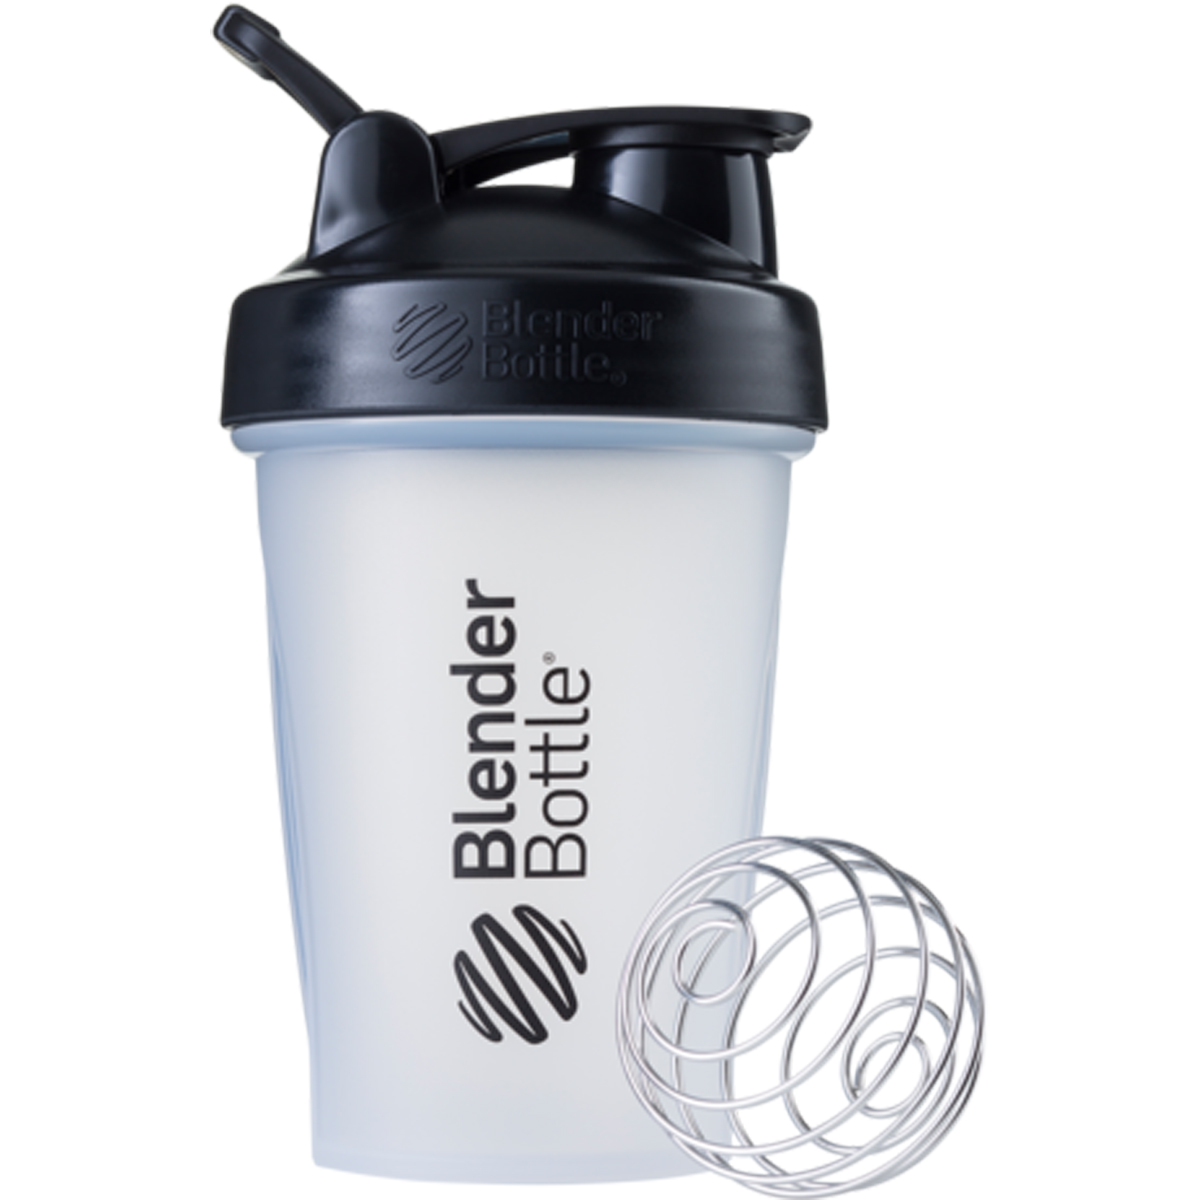 Protein Shaker Target Australia: Blender Bottle Classic 20 Oz. Shaker With Loop Top